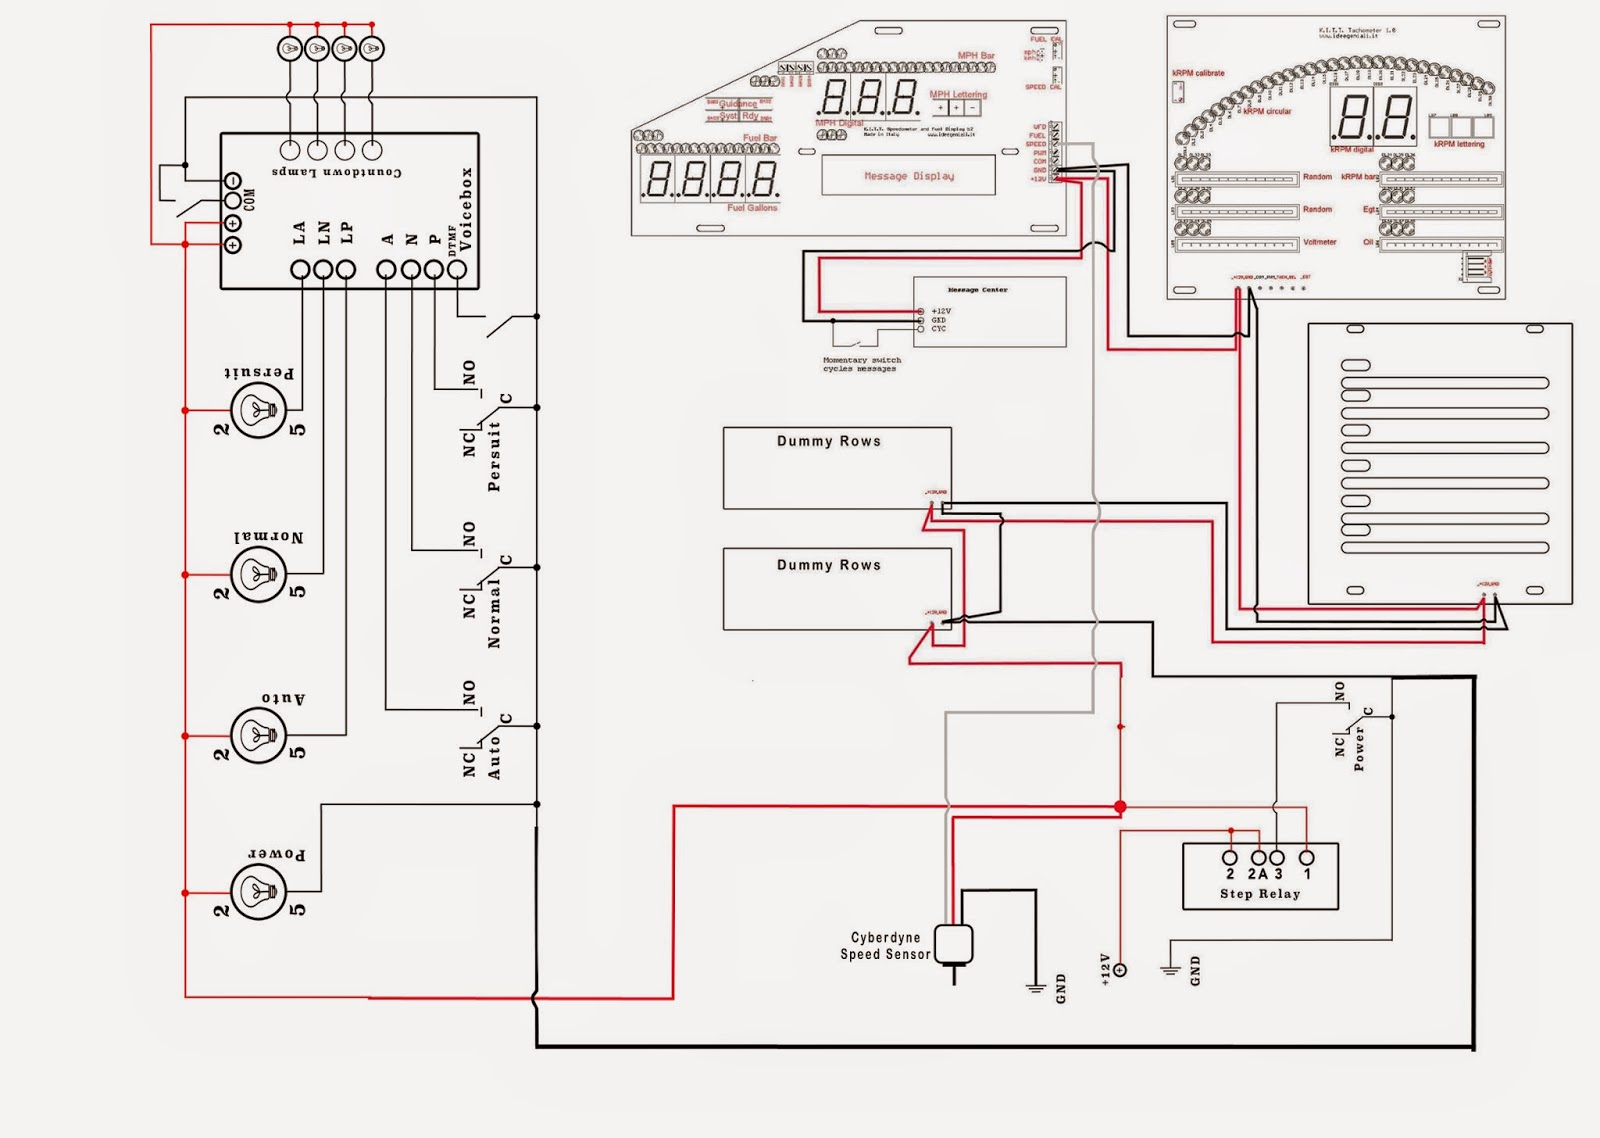 Illuminated Switch Wiring Diagram Free Download Car How To Install A Lighted Rocker 3 Way Rh Xwiaw Us Dual Relay From